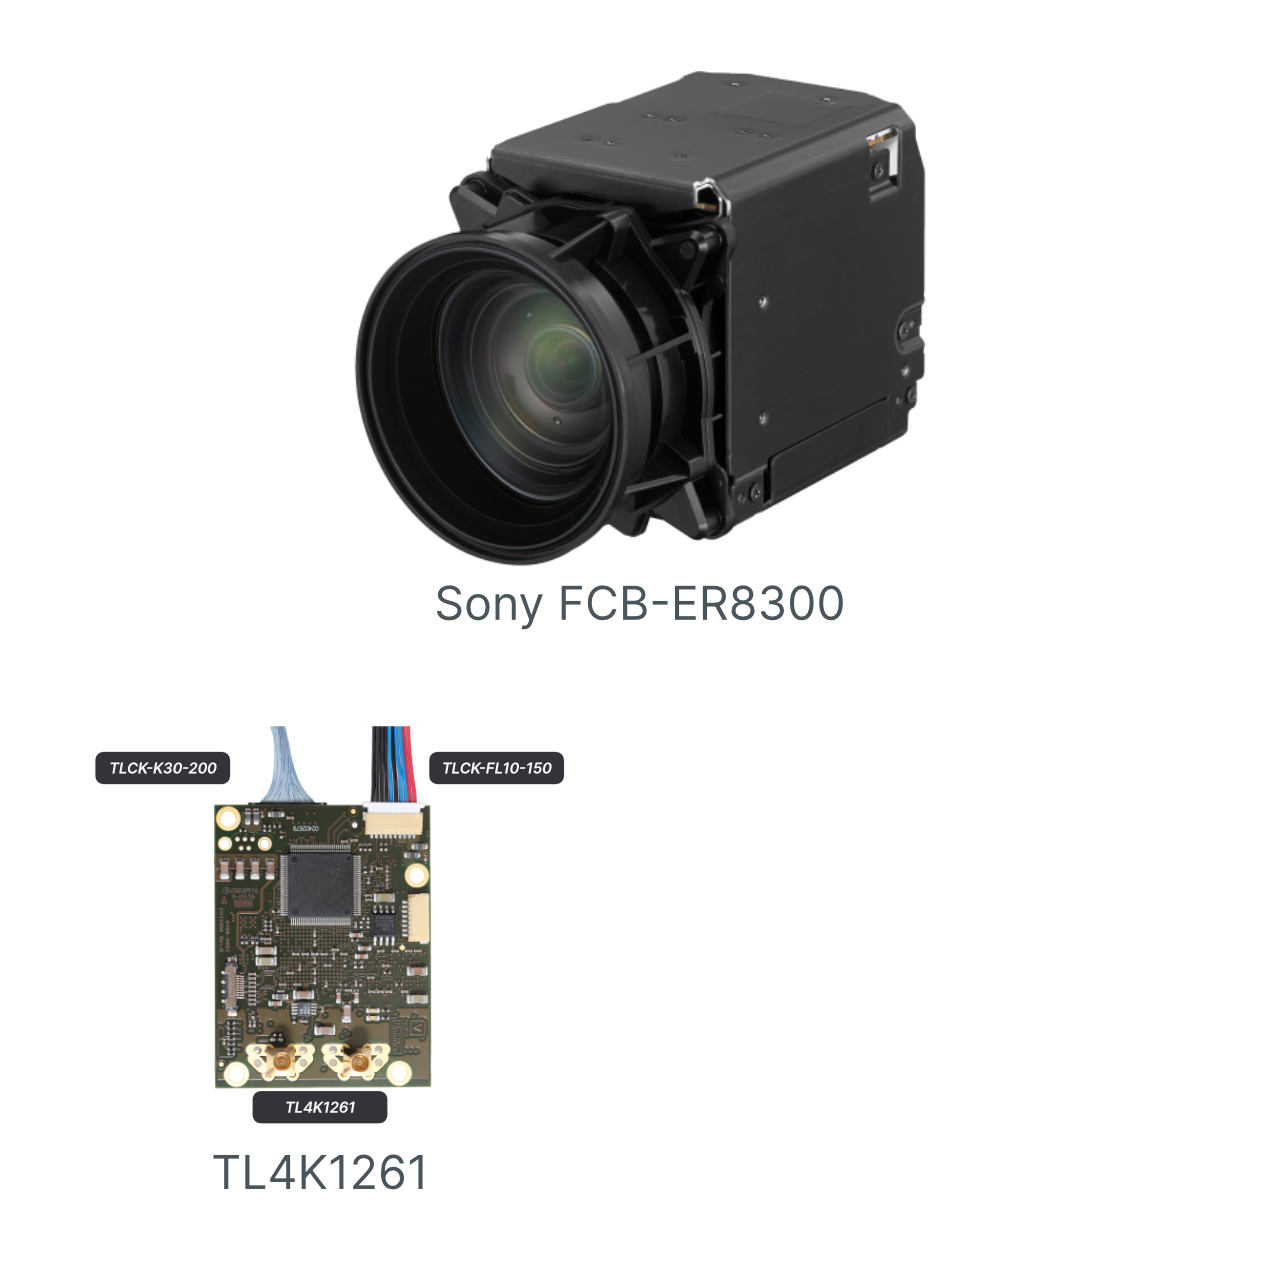 TL4K1261   Dual Link 3 Gbps UHD-SDI  (PCOC Feature)